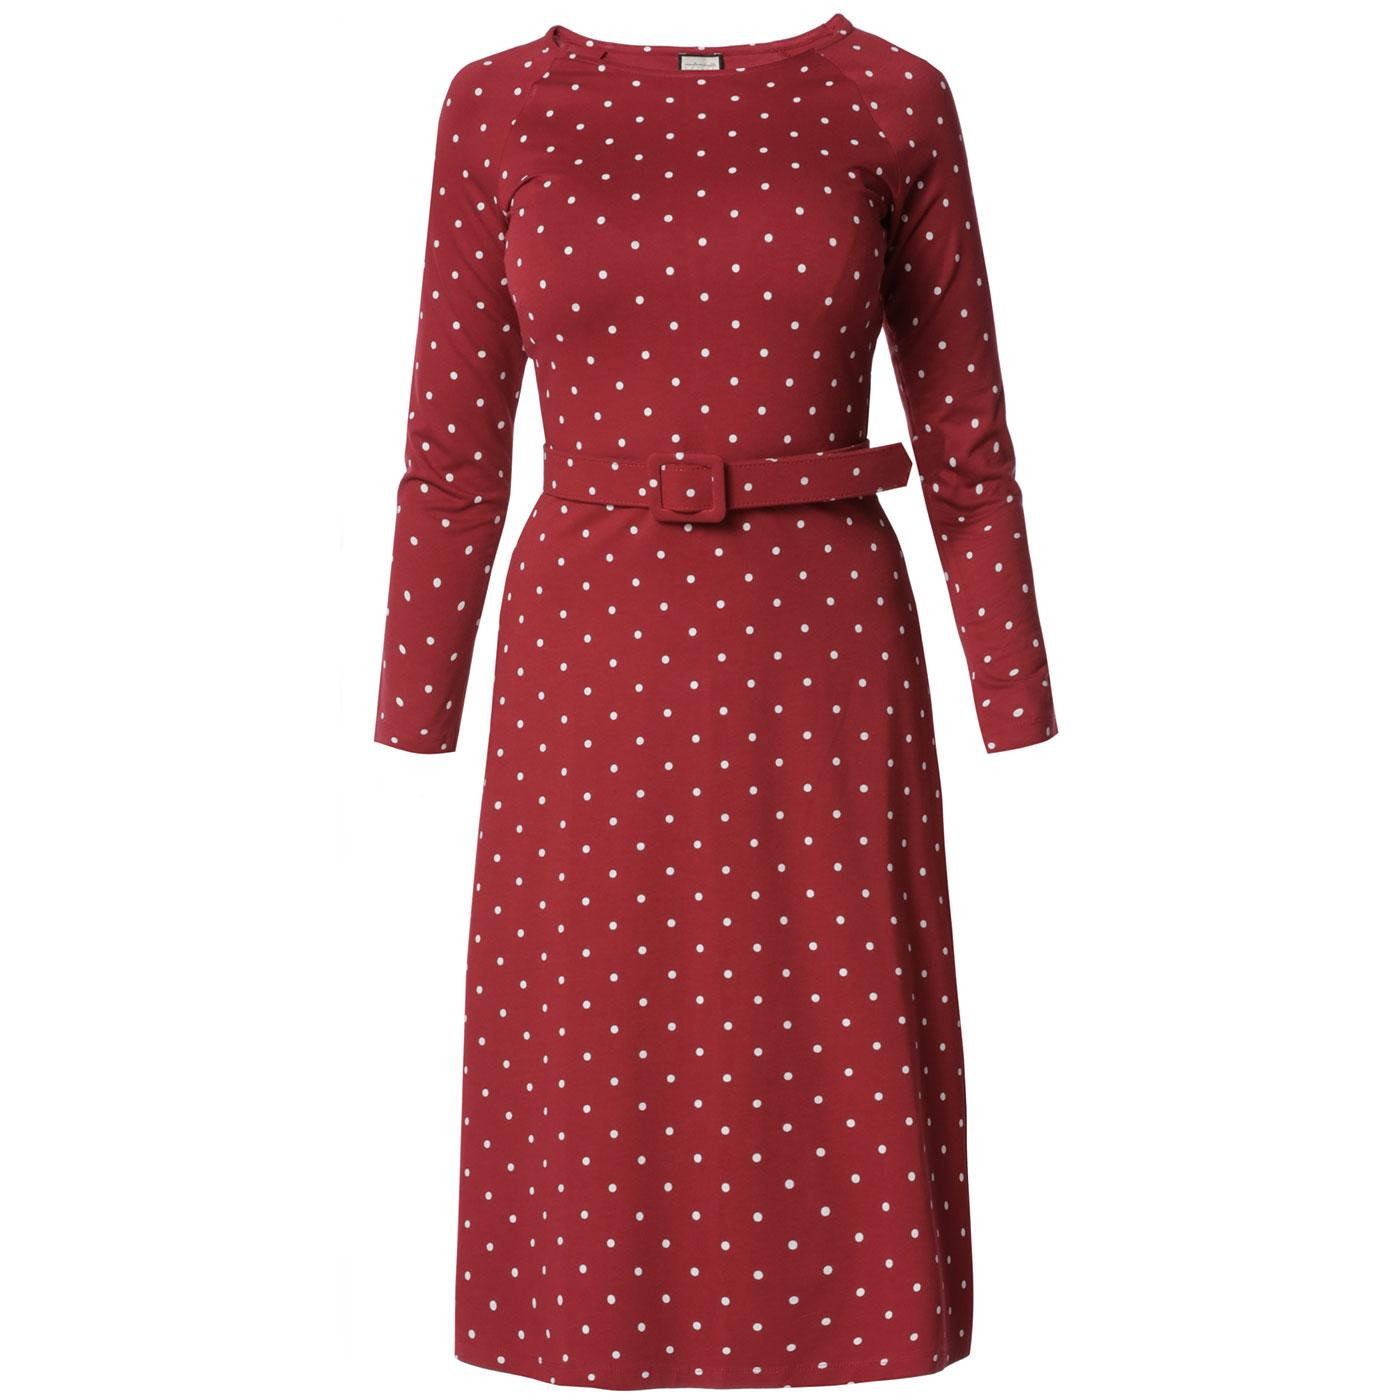 MADEMOISELLE YEYE Let Leaves Dance Polka Dot Dress